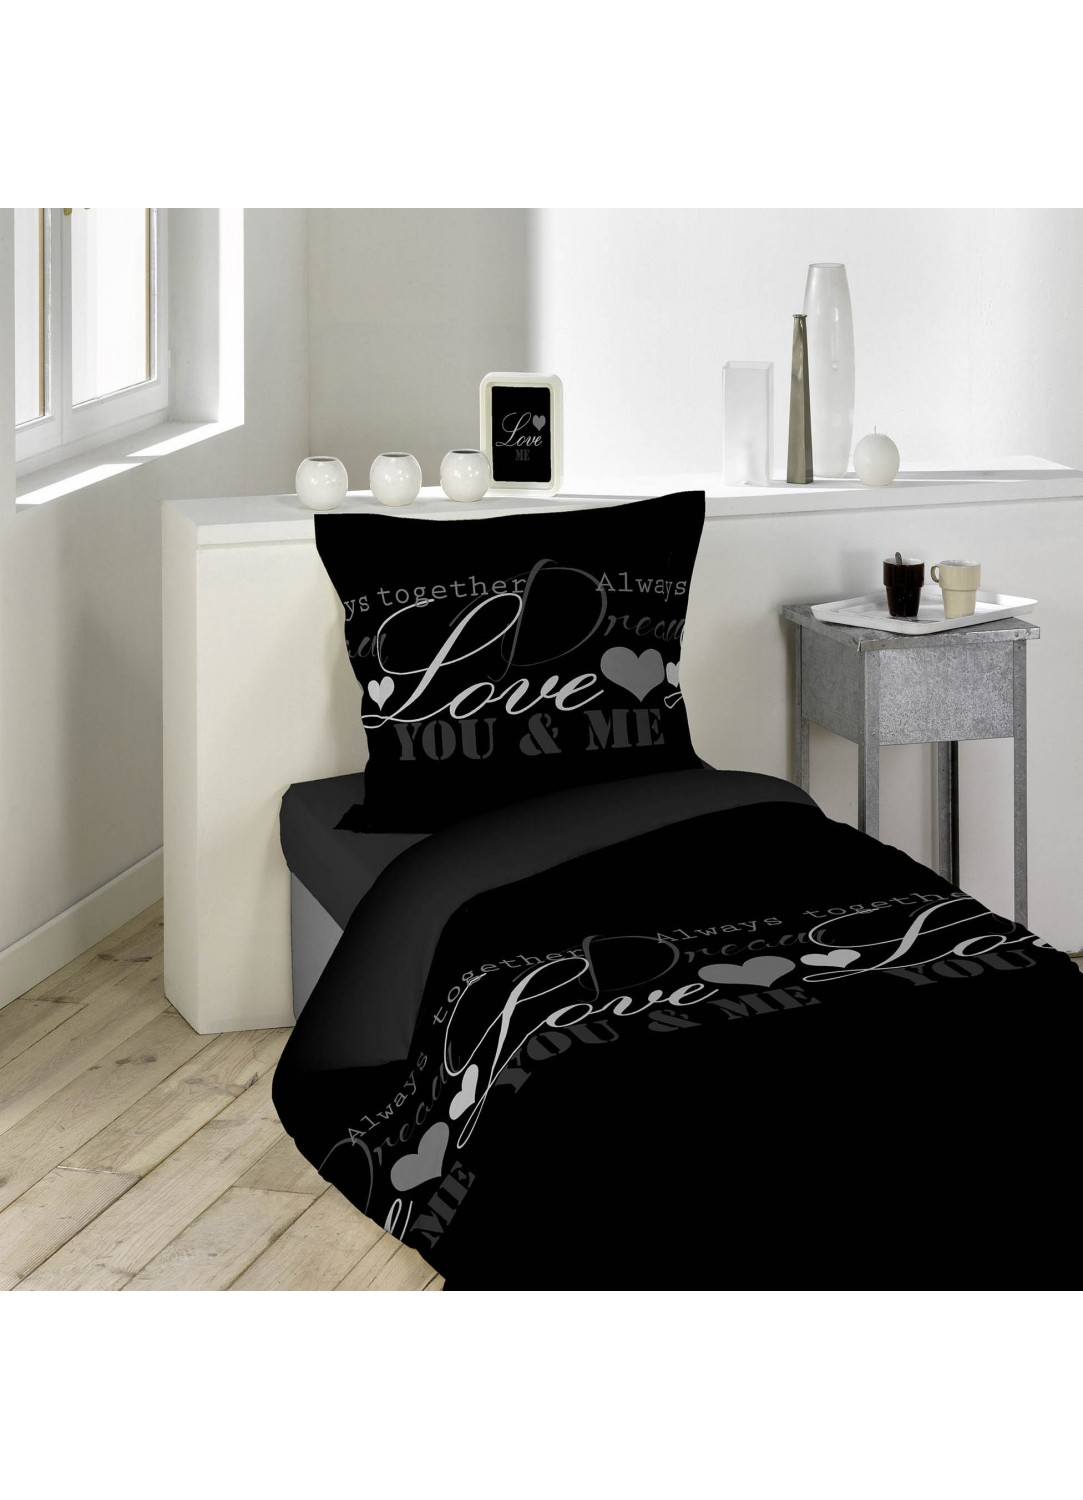 parure de lit imprim e love dreams noir homemaison vente en ligne parures de lit. Black Bedroom Furniture Sets. Home Design Ideas